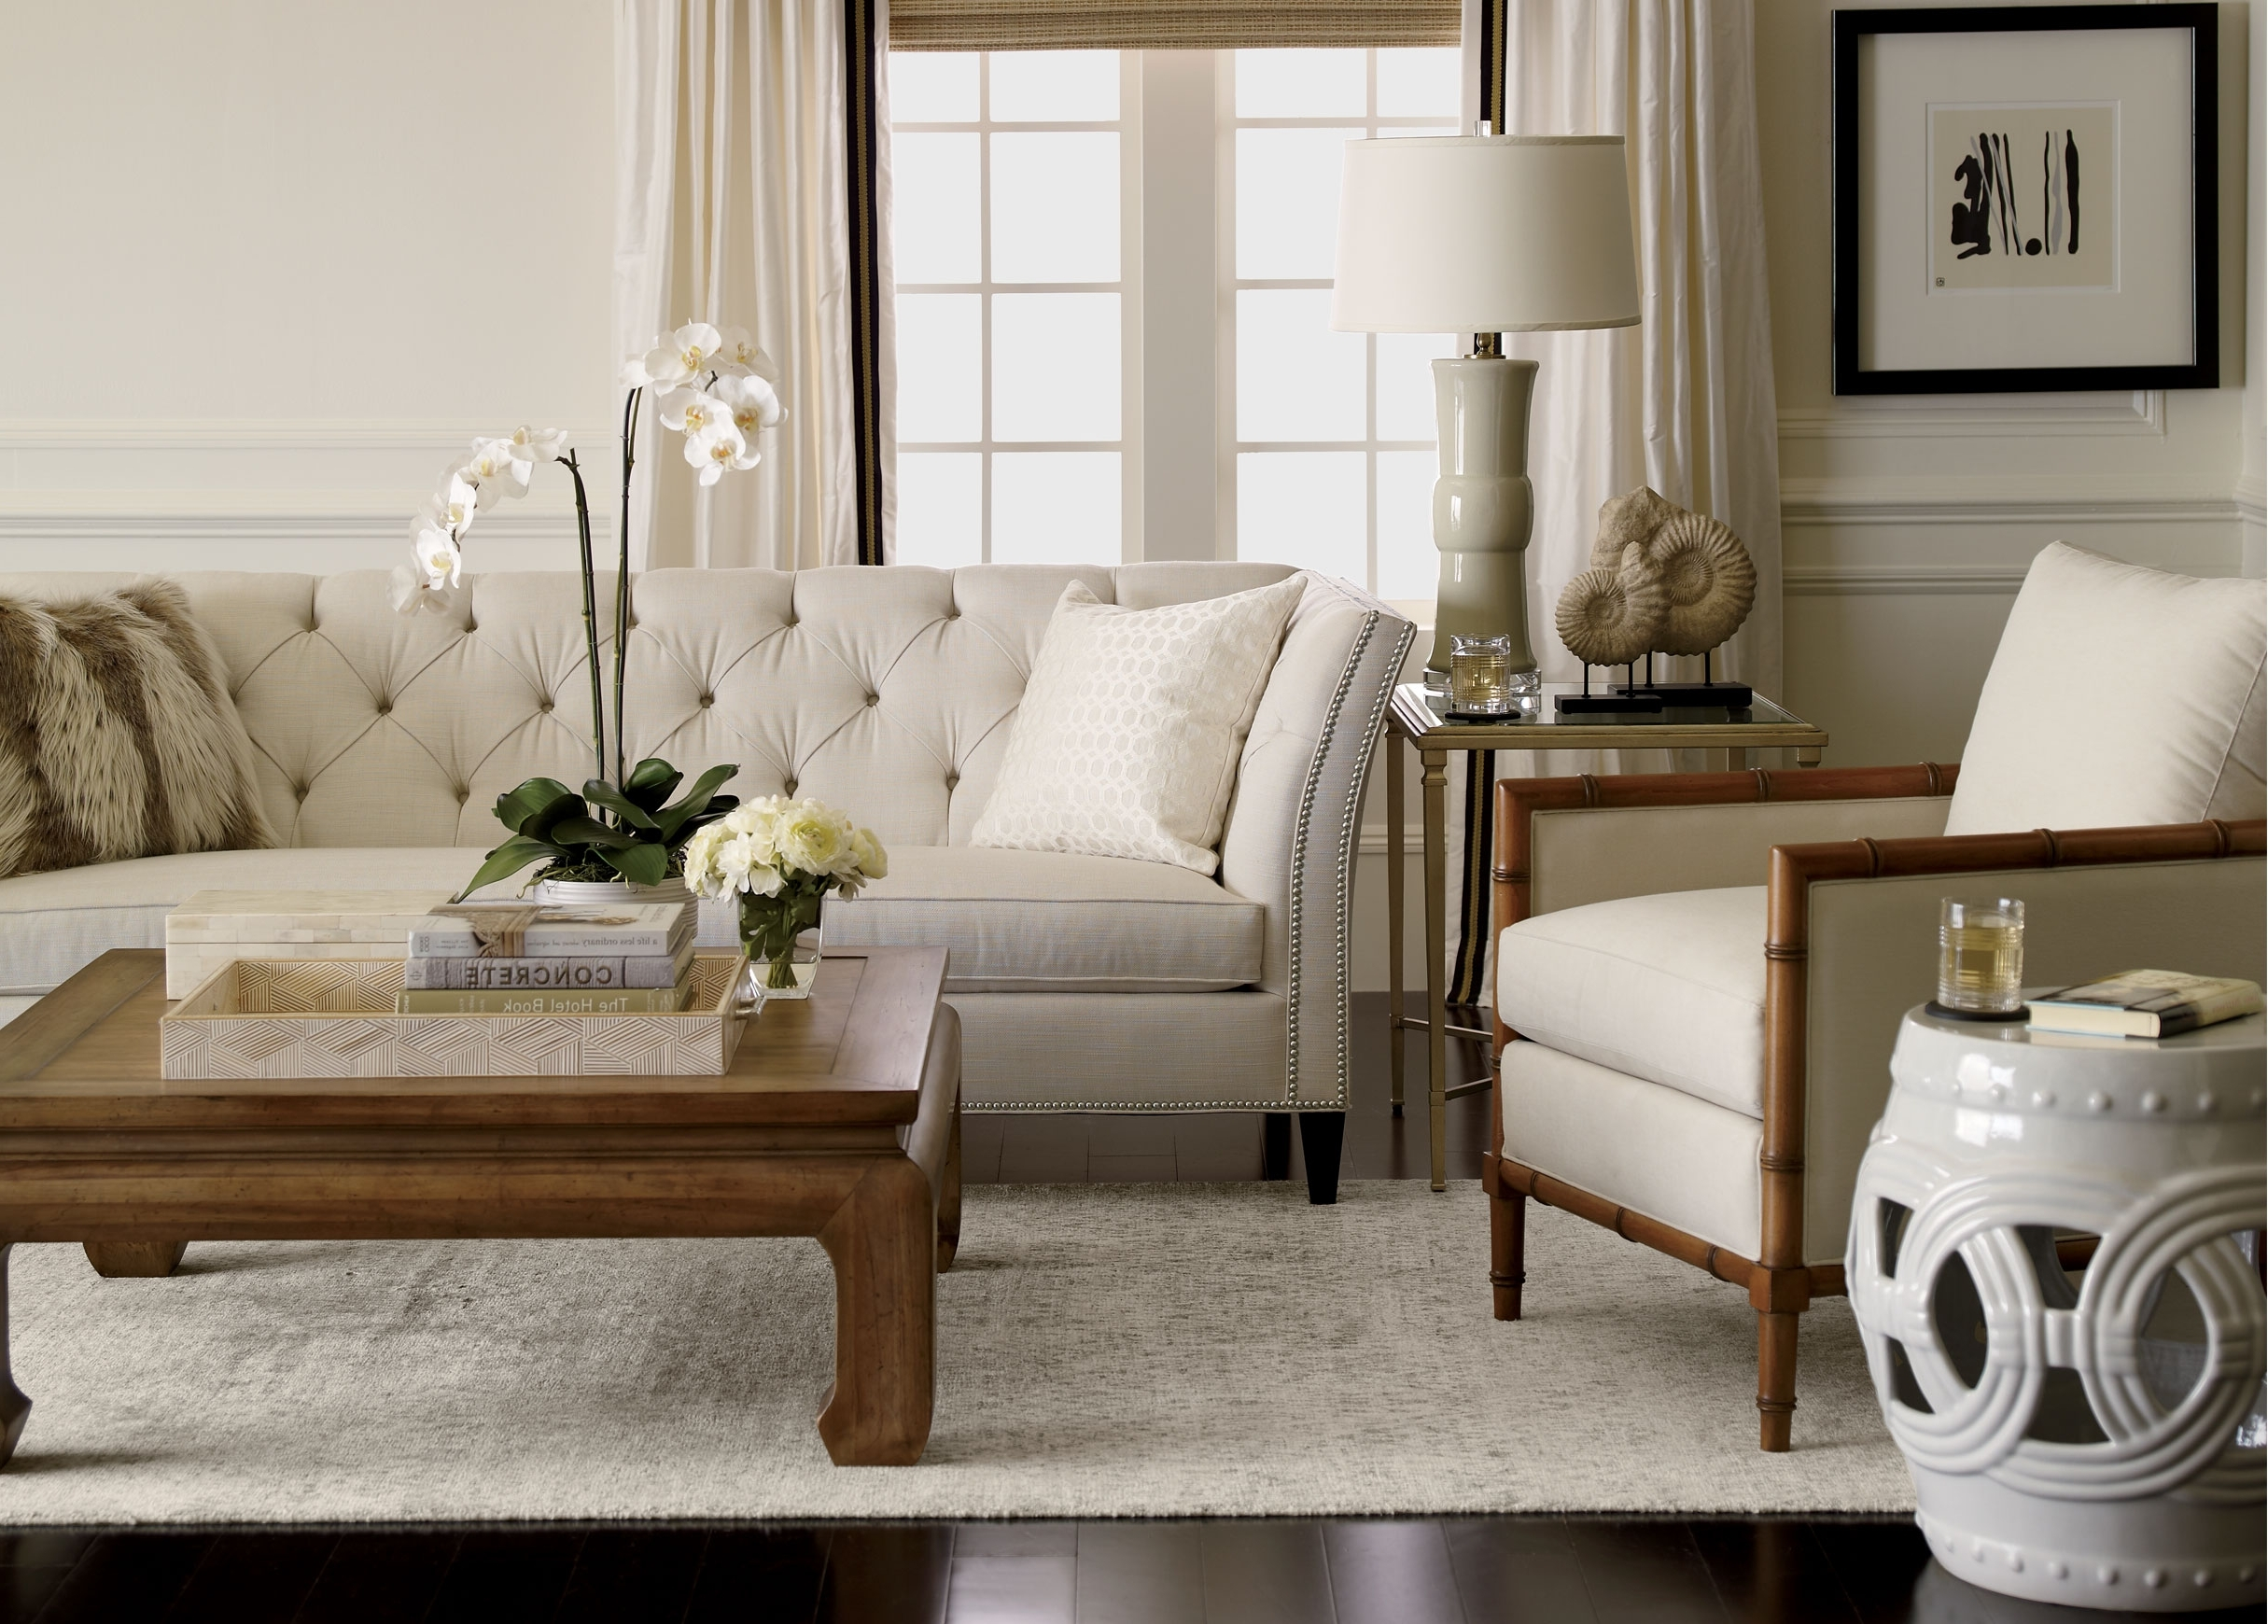 Newest Furniture: Beautiful Tufted Modern White Ethan Allen Sectional For Ethan Allen Sofas And Chairs (View 15 of 20)